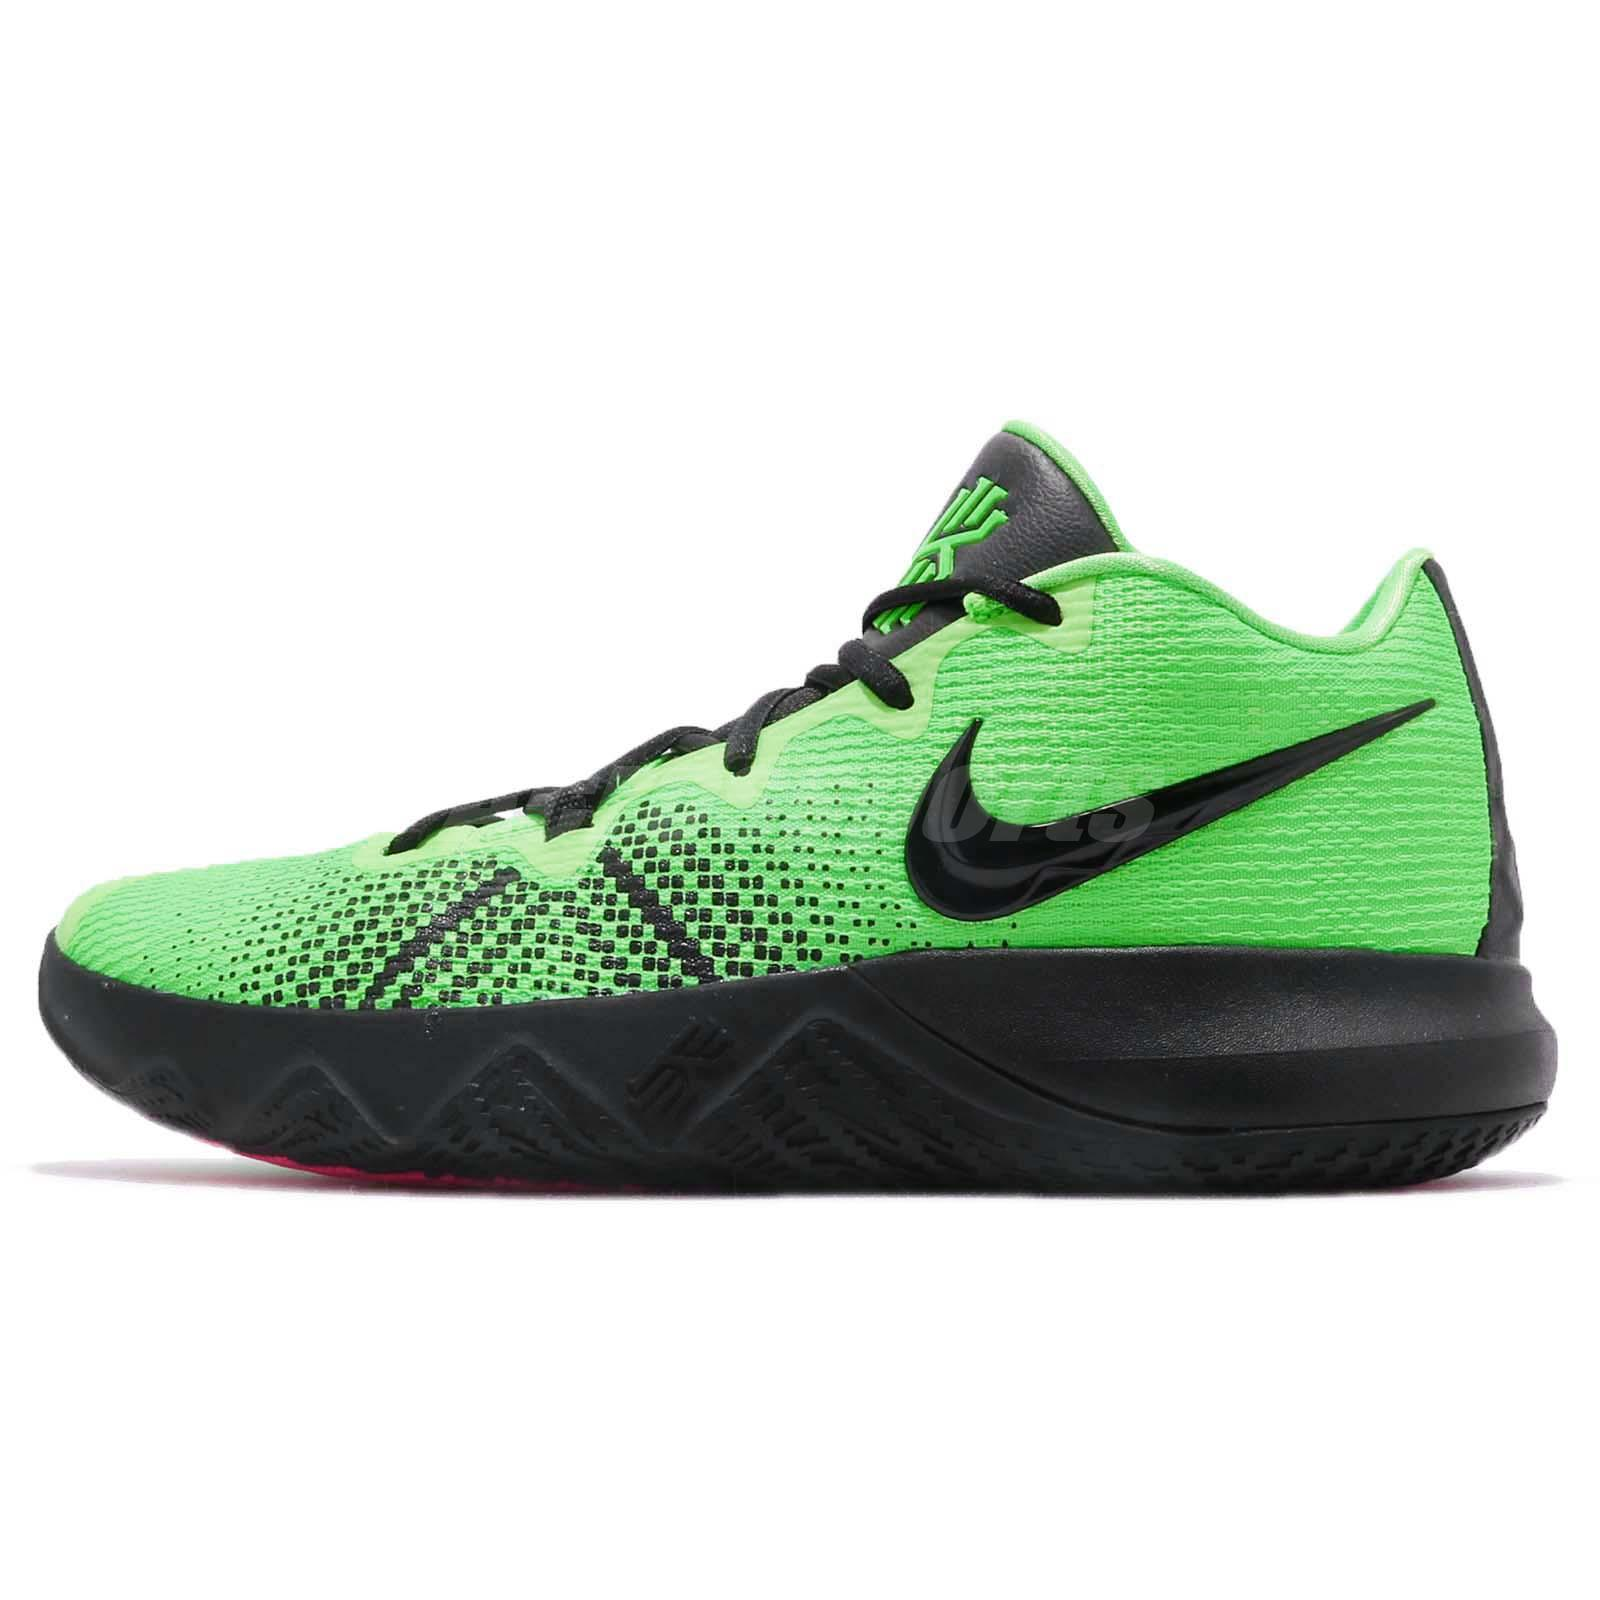 dc48fb3d7db Nike Kyrie Flytrap EP Irving Rage Green Black Men Basketball Shoes  AJ1935-300